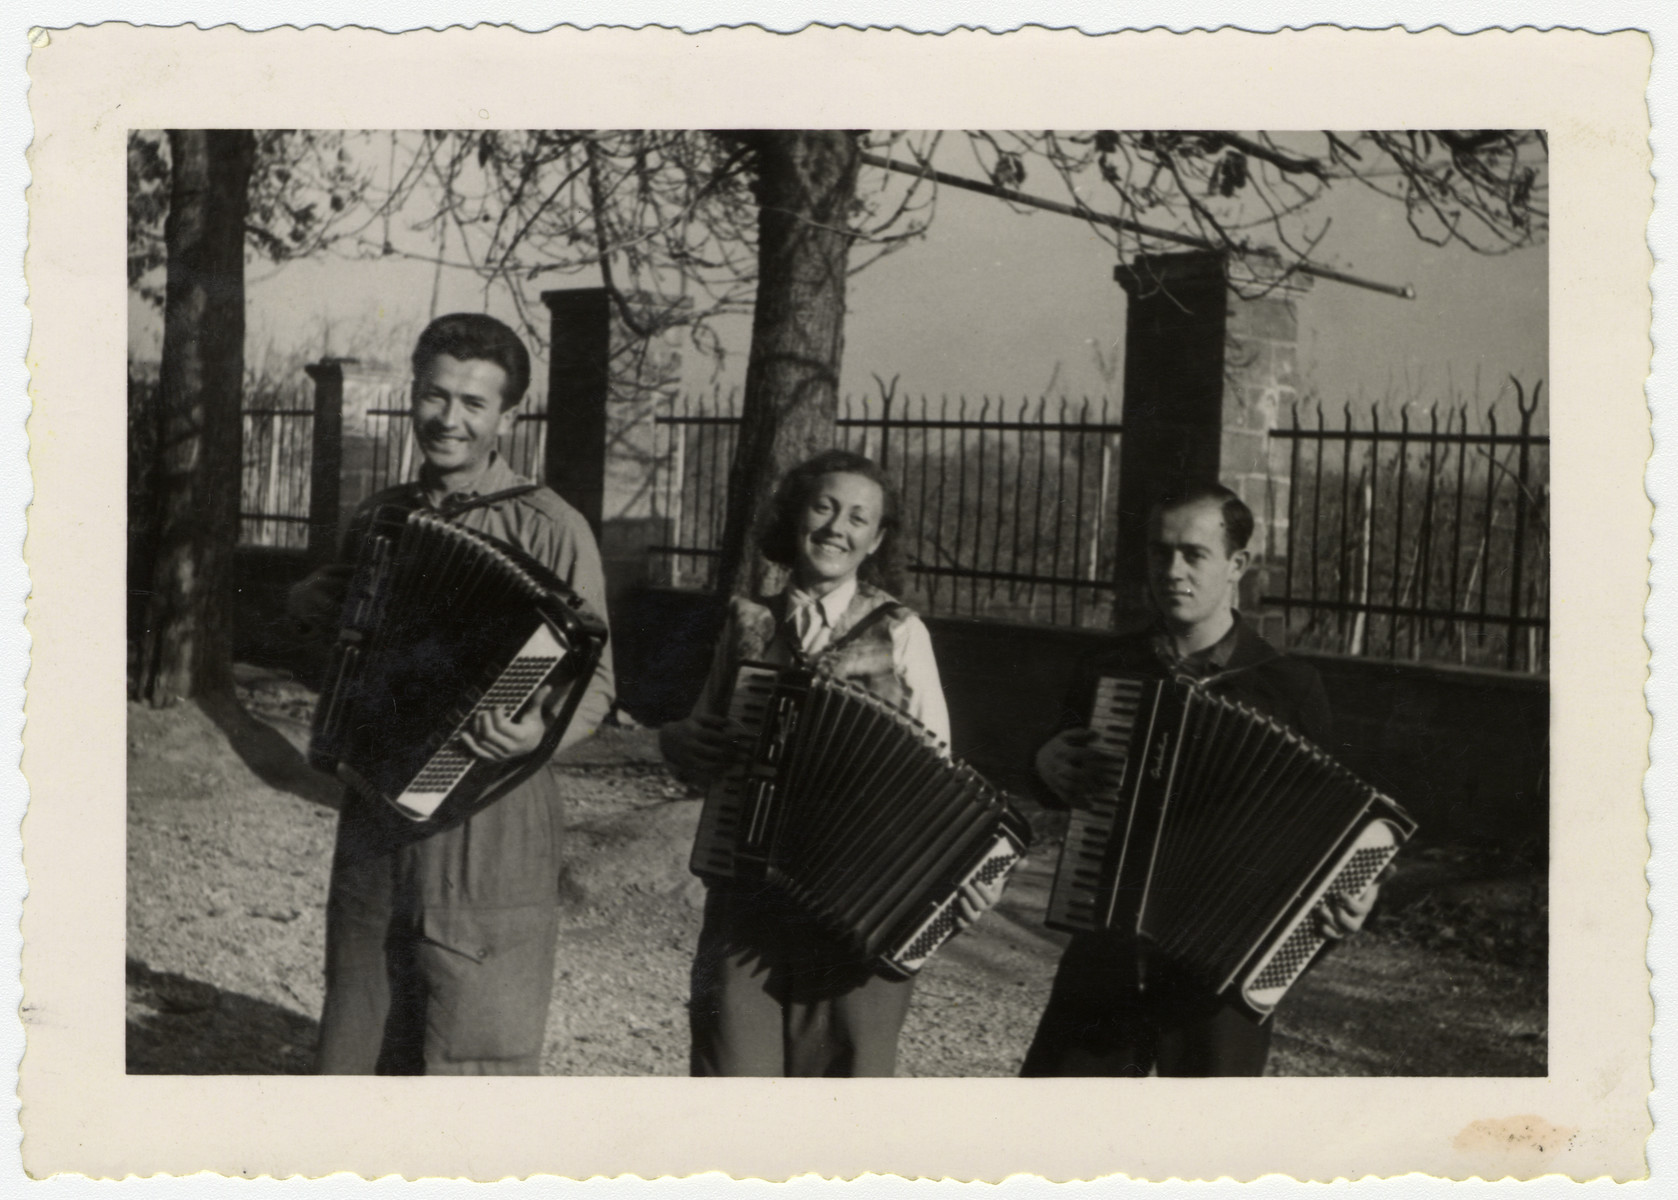 Gerta  Bagriansky and two friends play the accordion in a displaced person's camp in Graz, Austria.